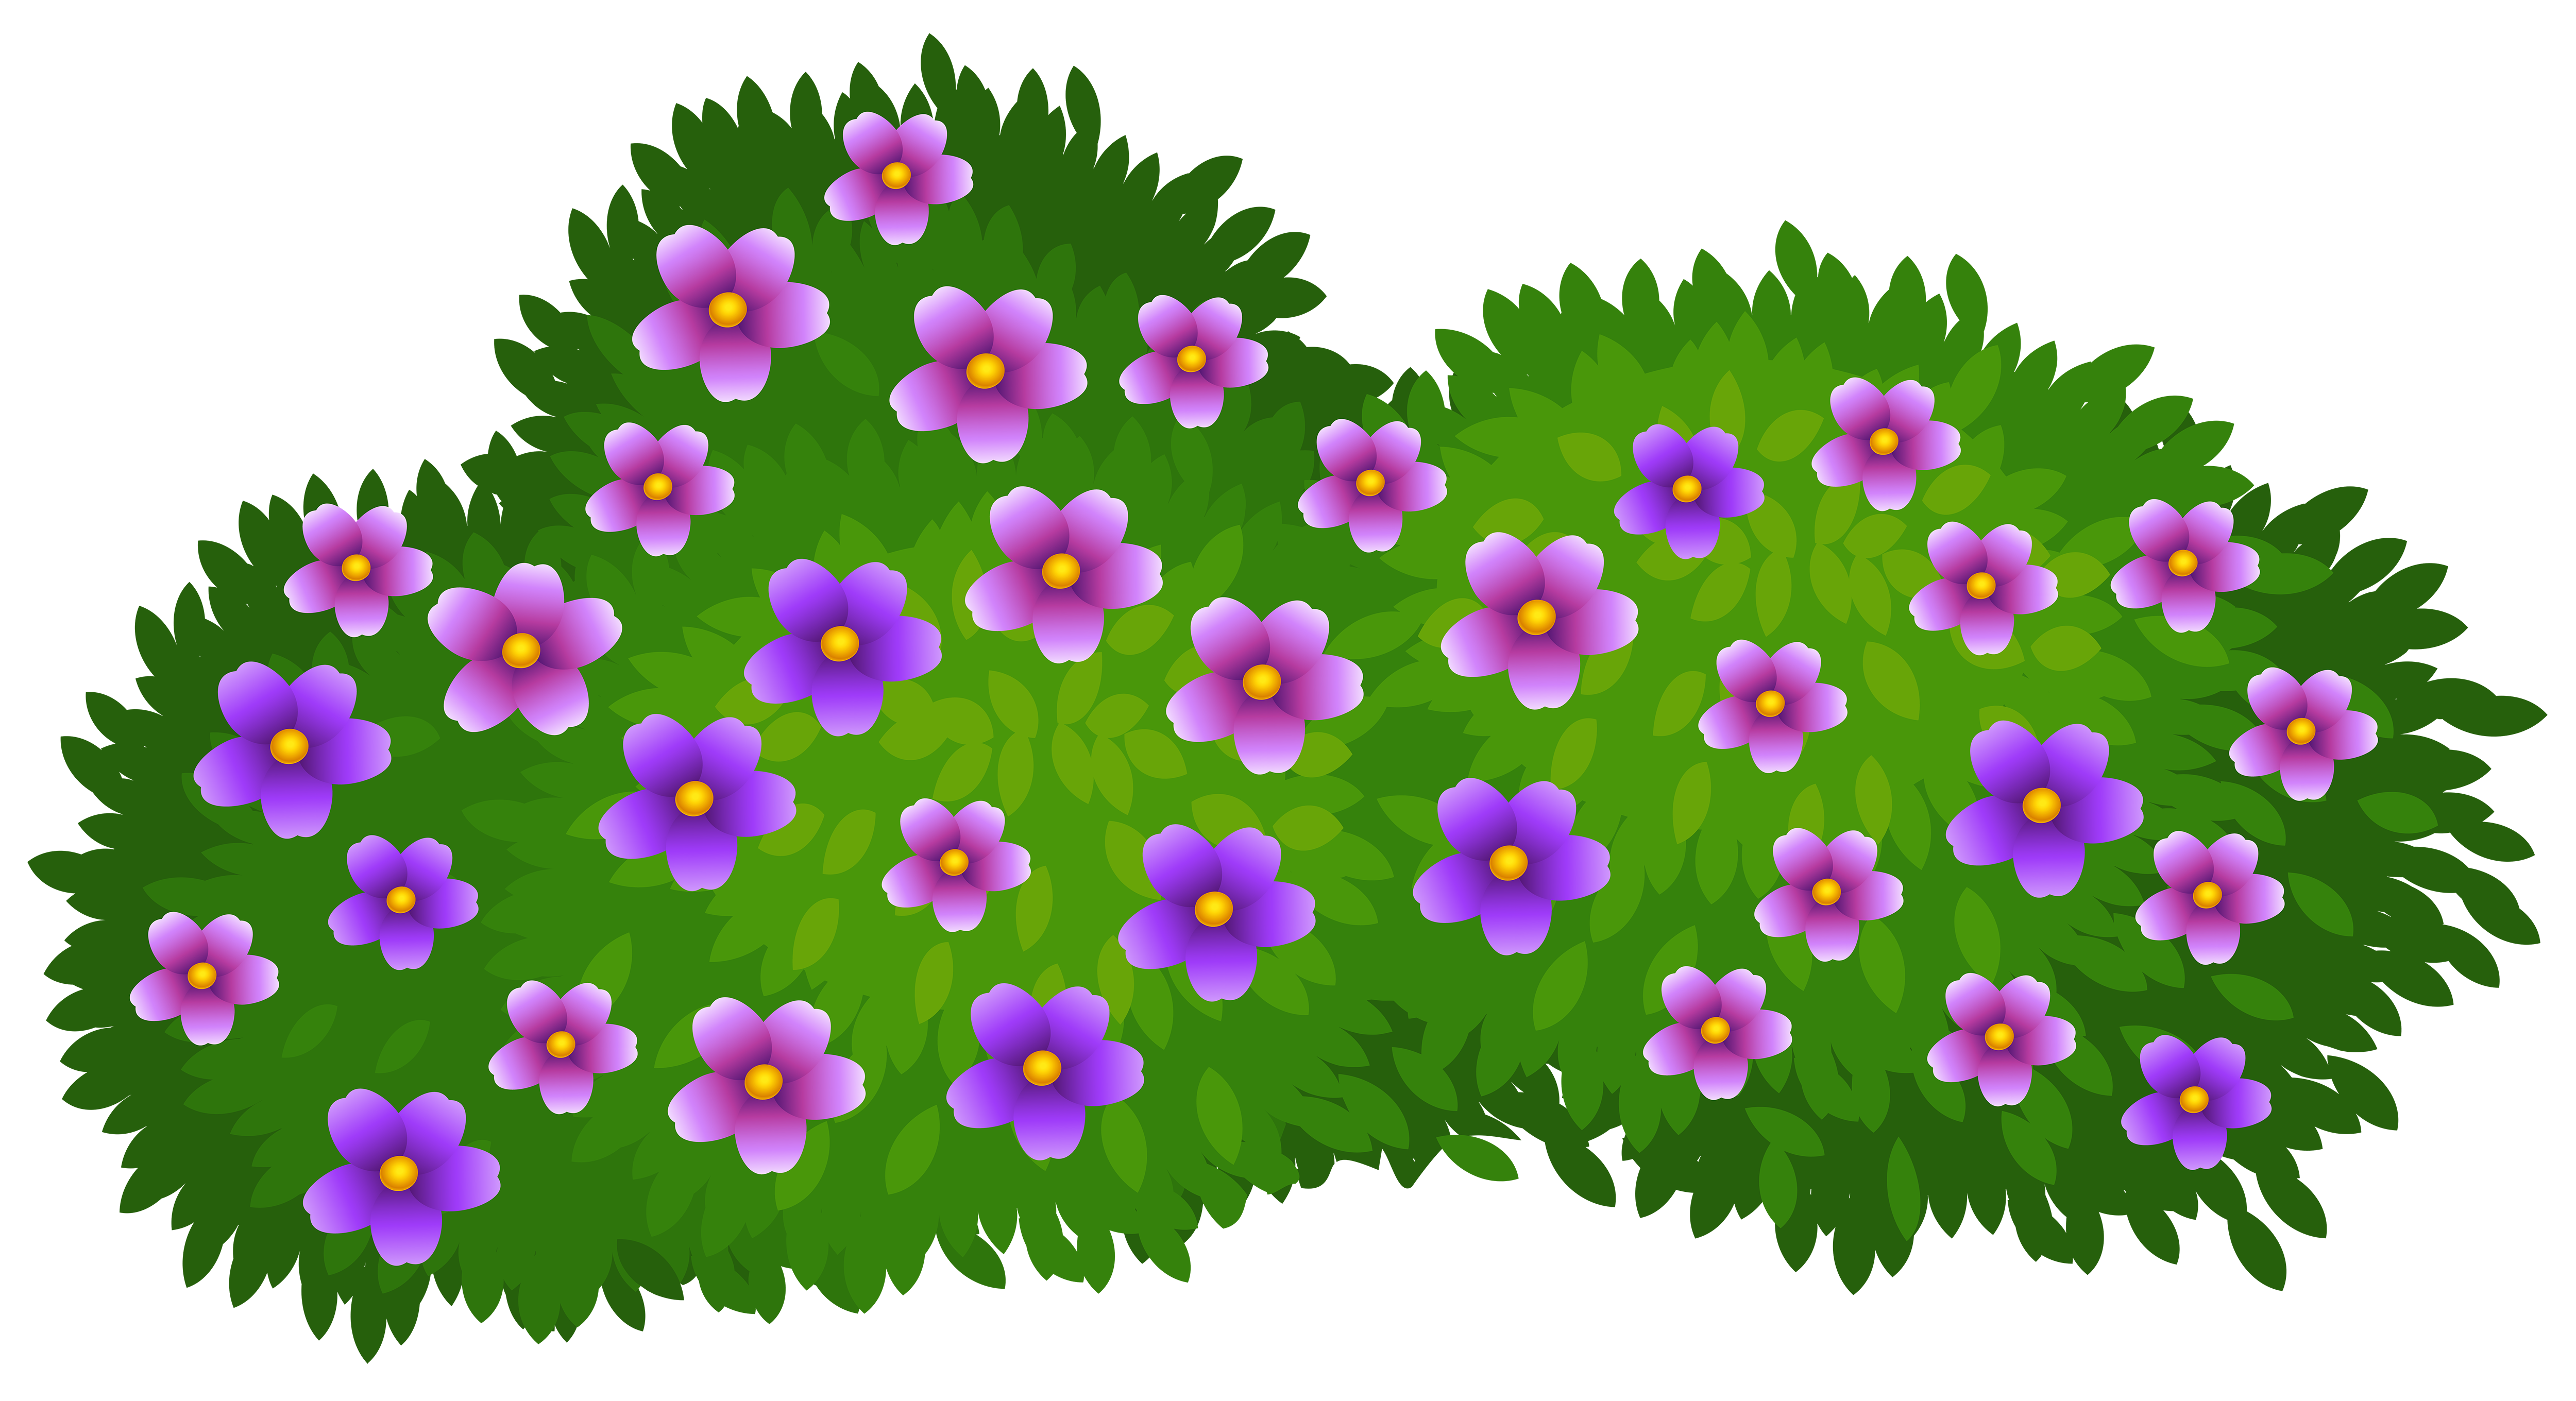 Flower bush clipart vector library stock Green Bush with Flowers Transparent PNG Clip Art Image   Gallery ... vector library stock